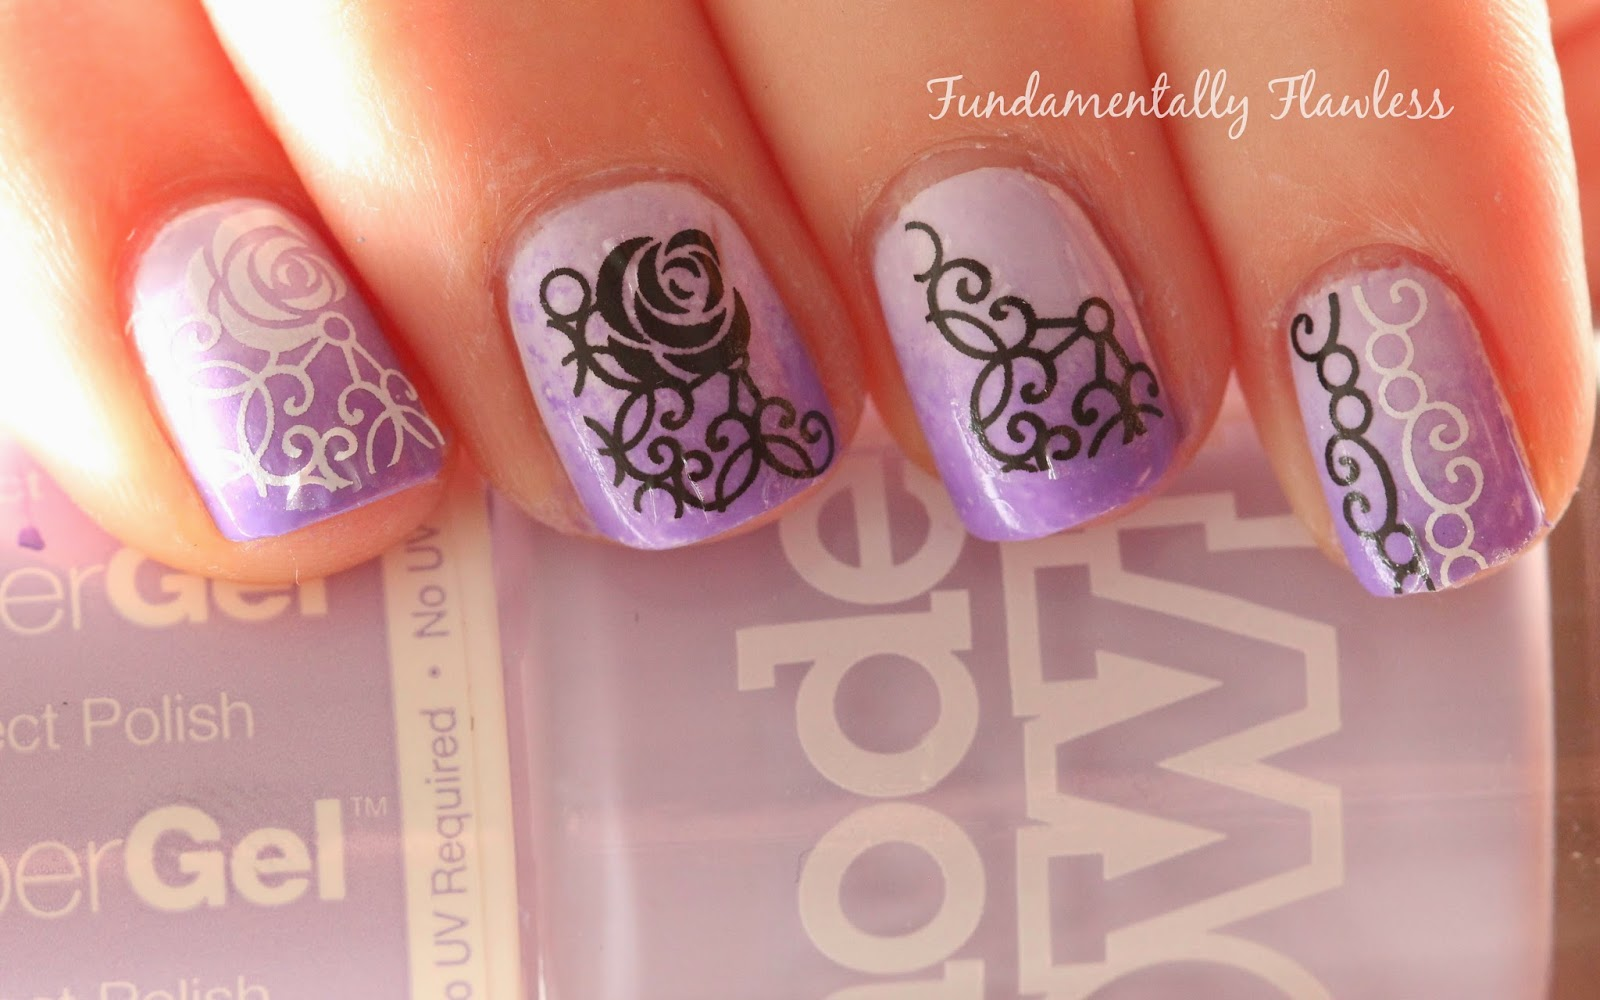 Models Own Lilac Sheen and Born Pretty Store Water Decals